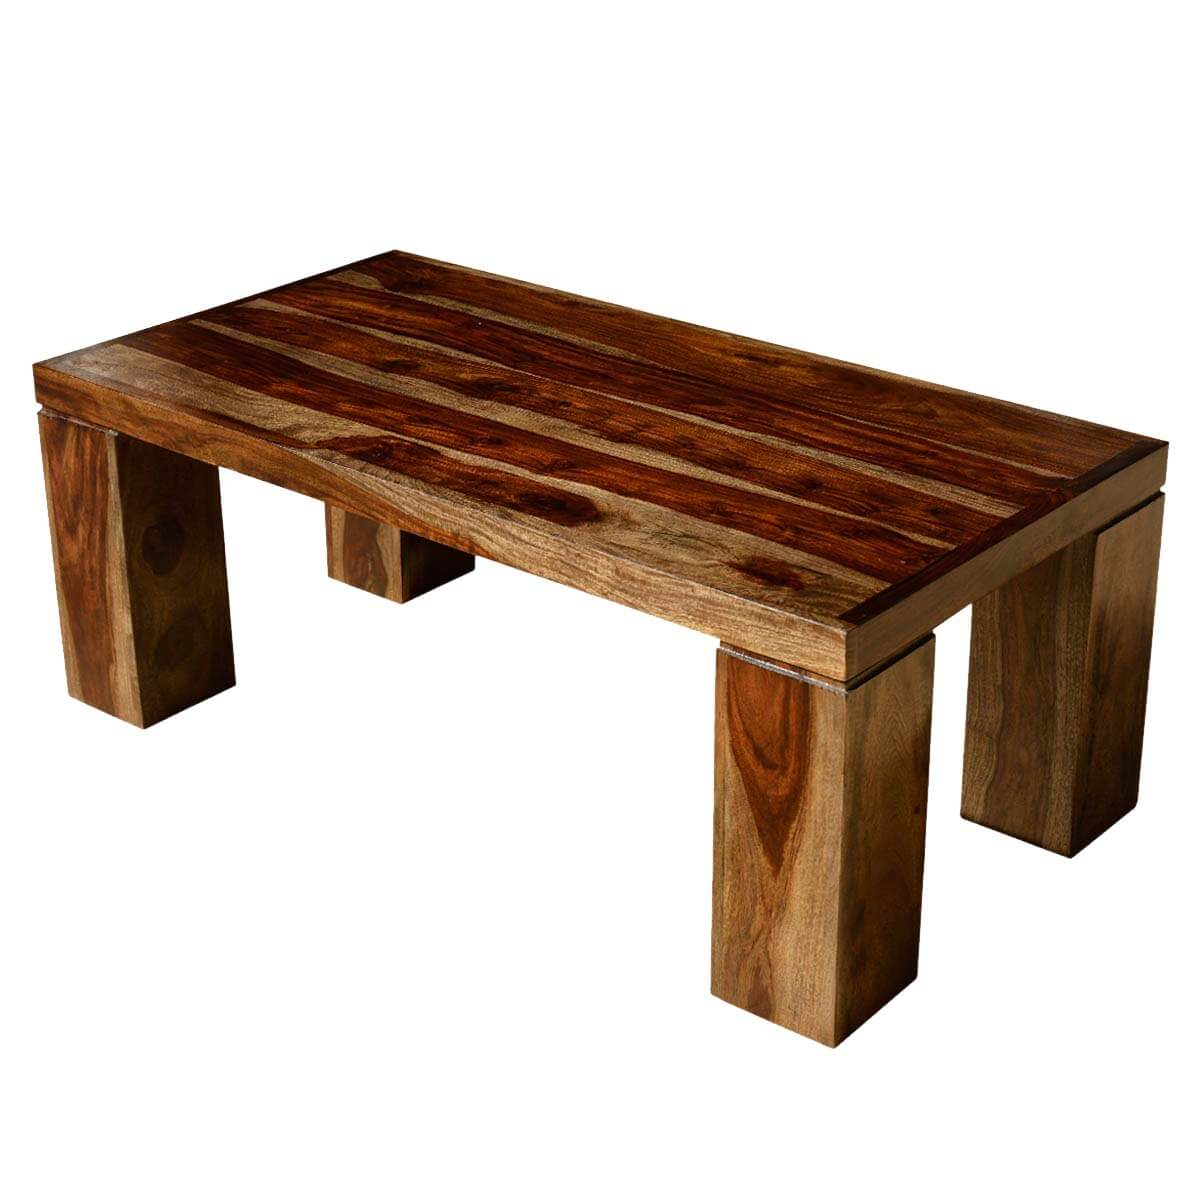 Modern Wood Coffee Table: Contemporary Solid Wood Espresso Coffee Table W Block Legs